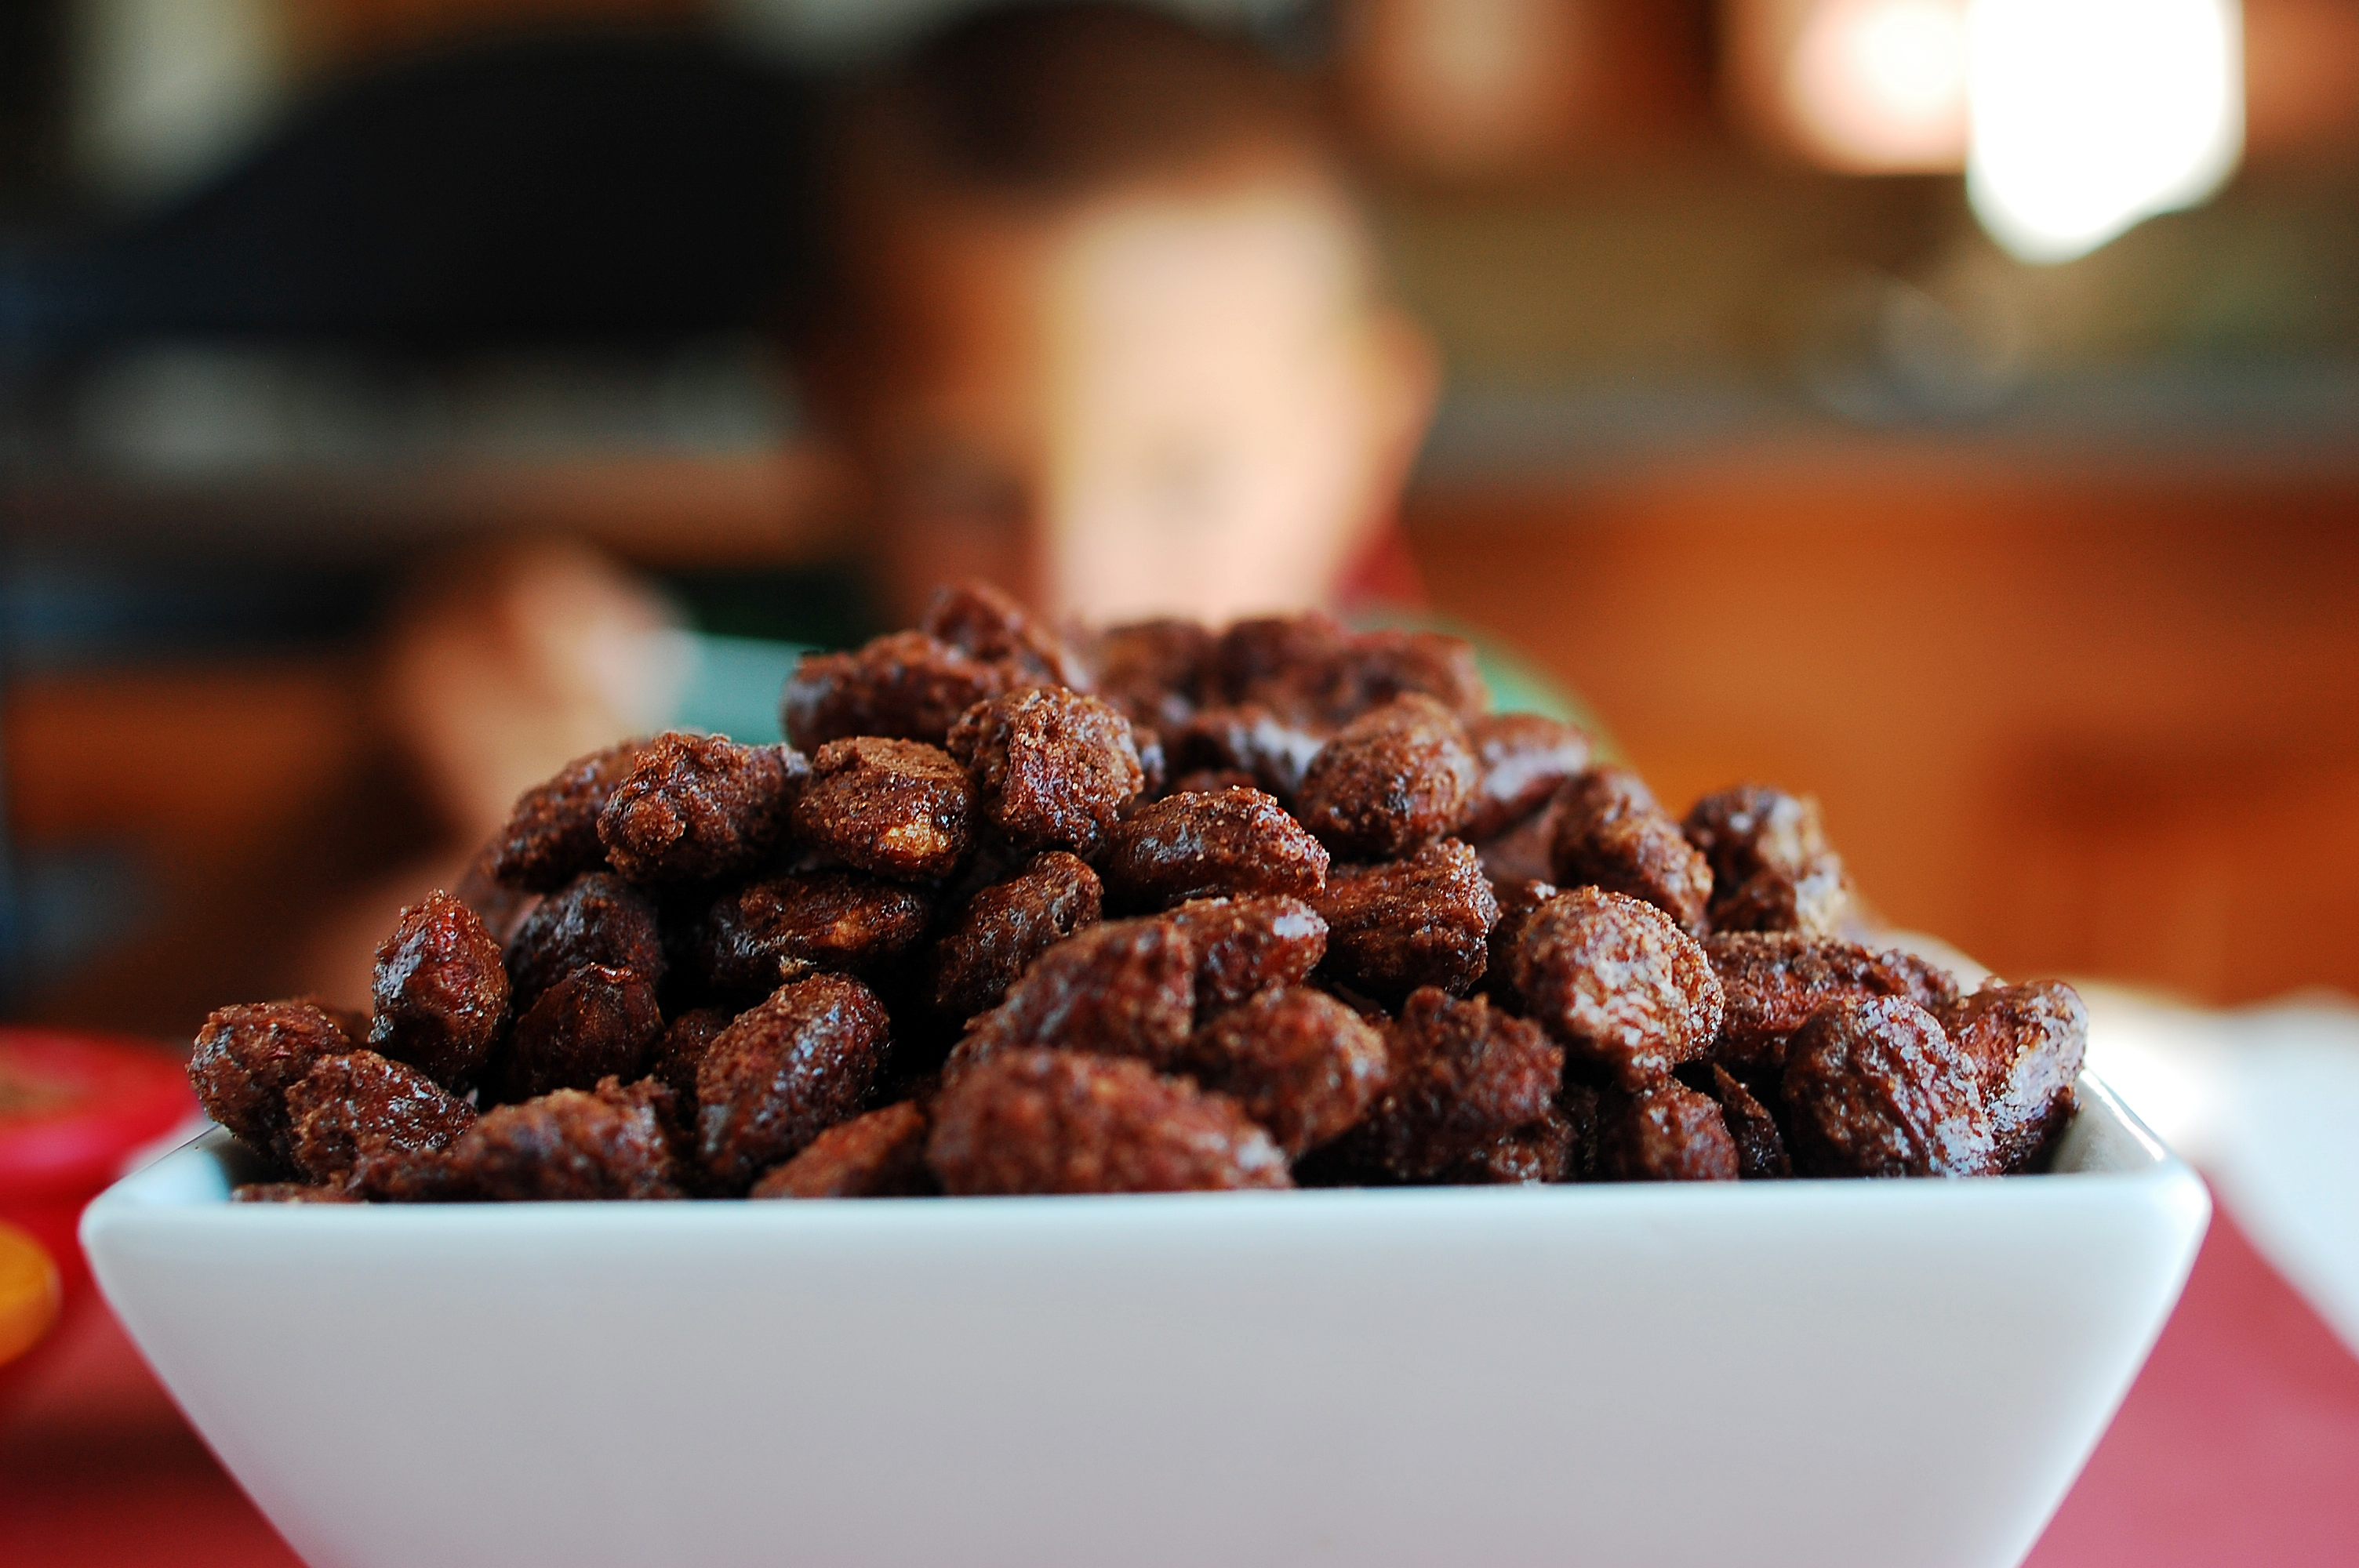 Chocolate Covered Almond Treat Healthy Ideas For Kids